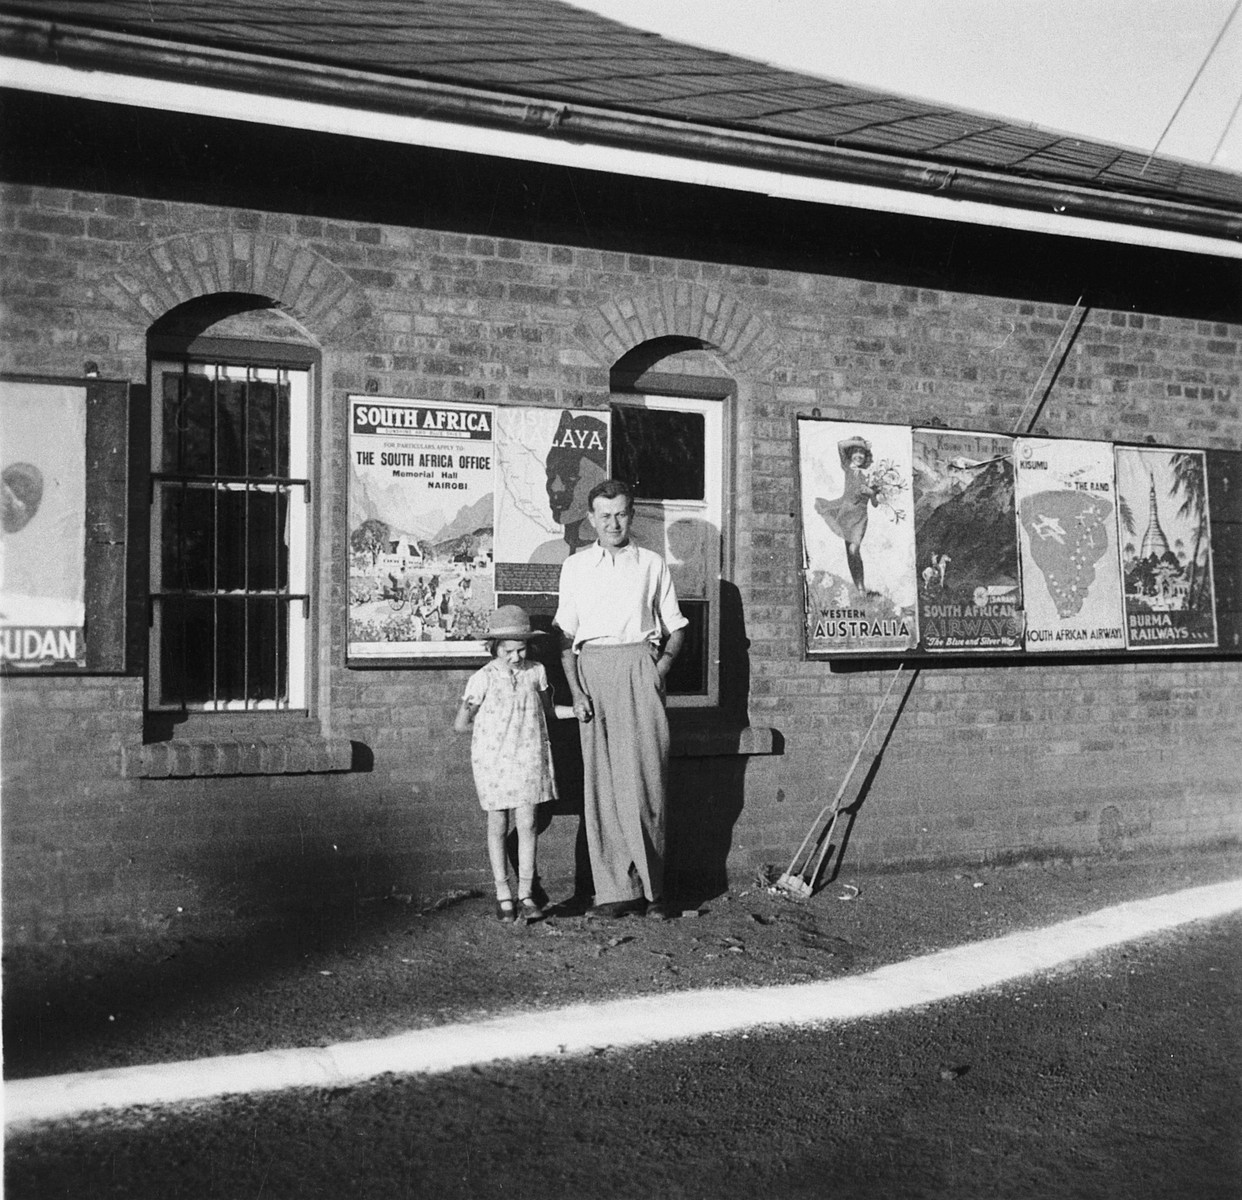 A Jewish refugee father poses with his daughter in front of a building covered with travel posters in Kenya.  The daughter is Stefanie Zweig.